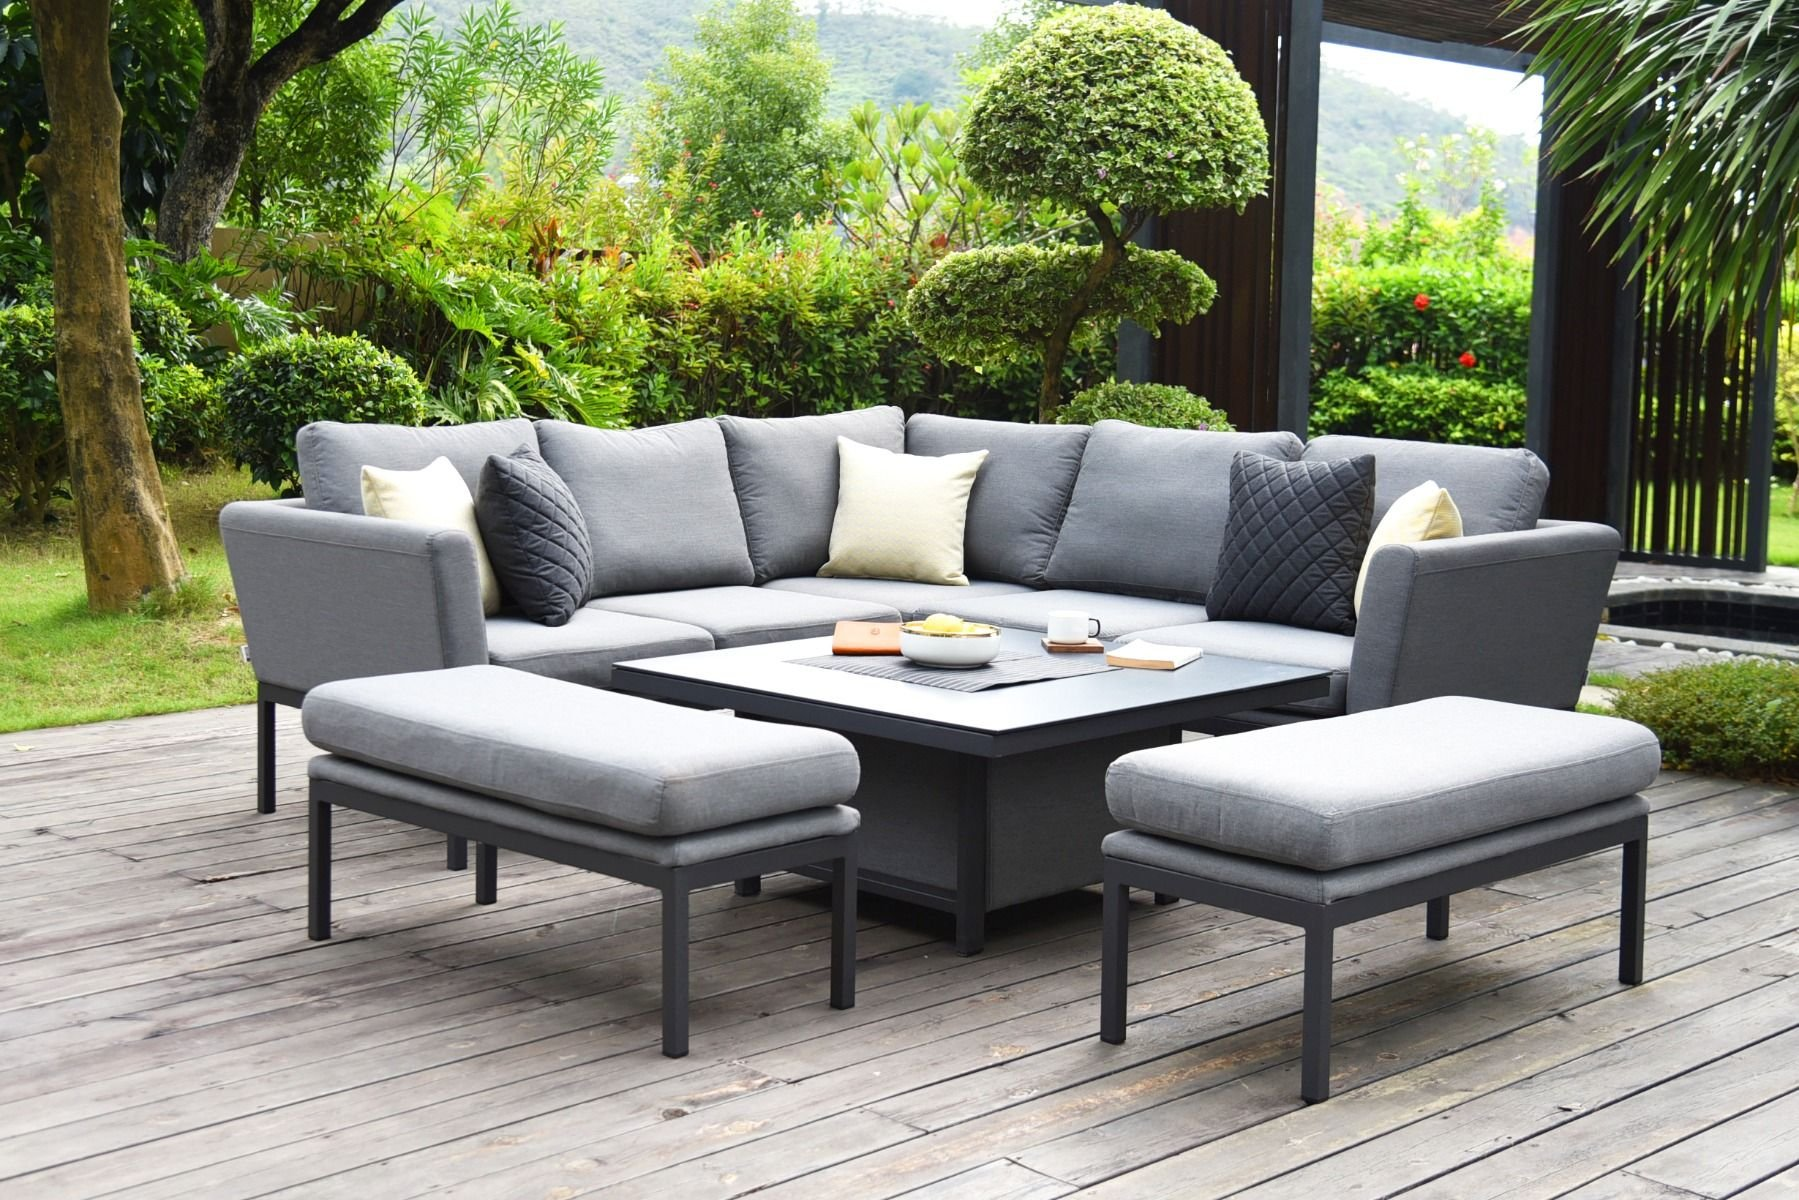 Image of: Pulse Square Corner Dining Set With Fire Pit Flanelle The Clearance Zone